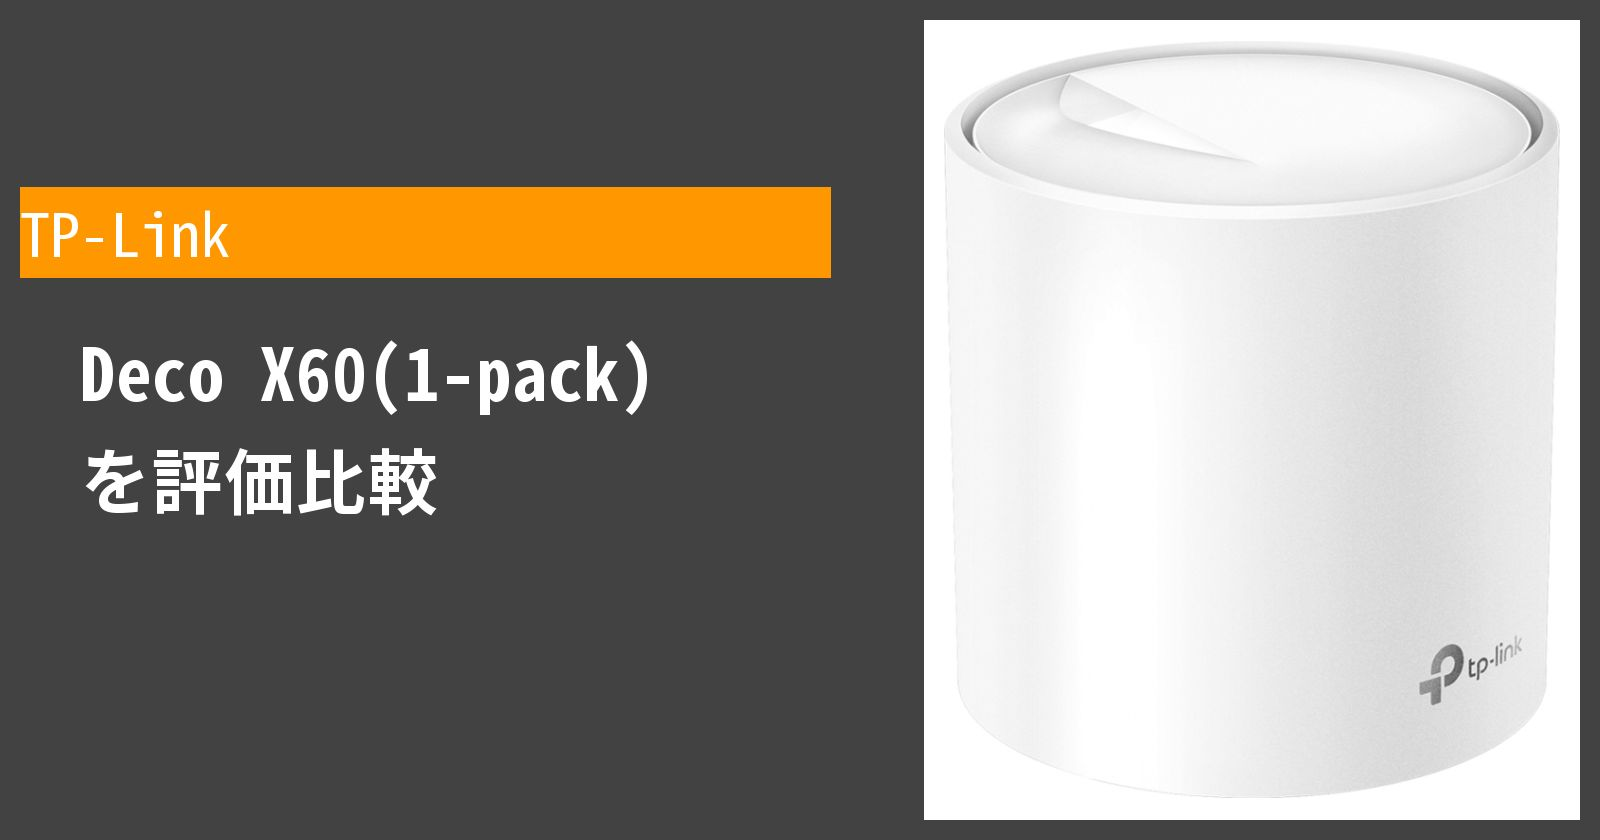 Deco X60(1-pack)を徹底評価